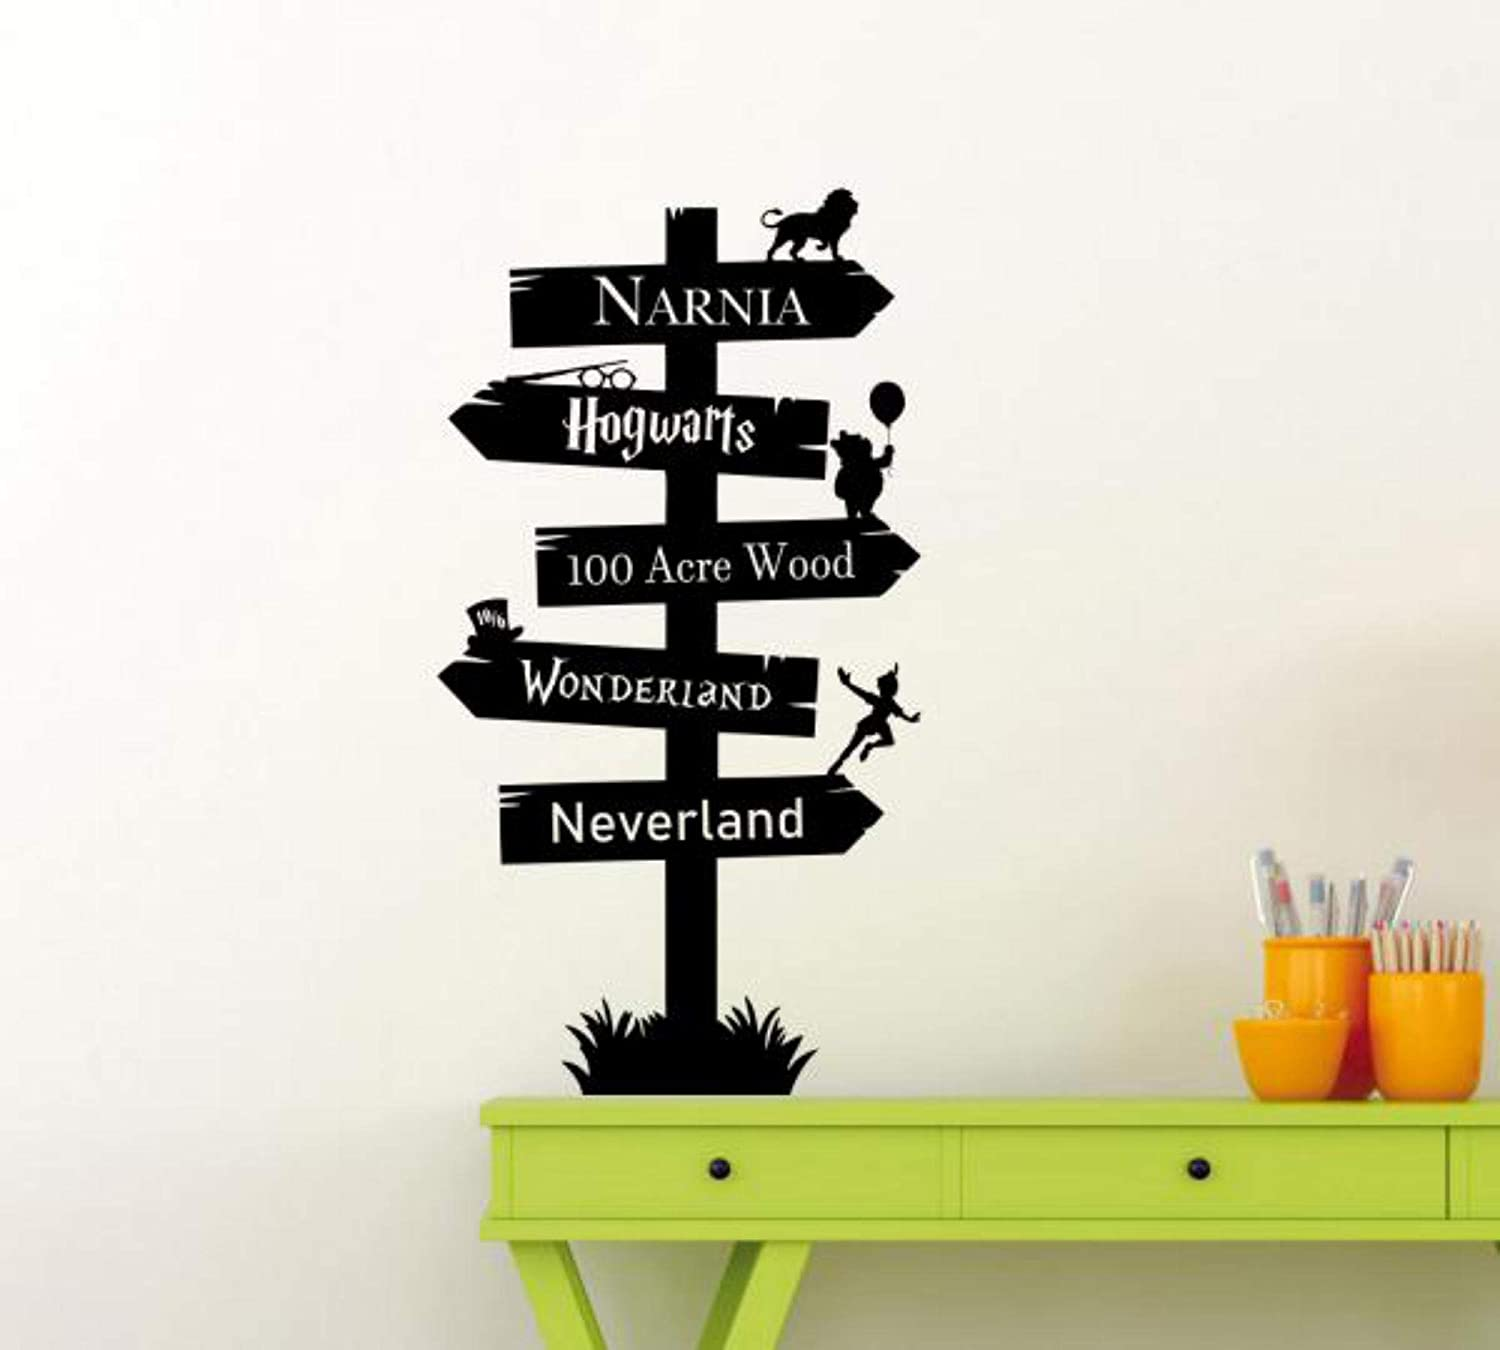 Road Sign Wall Decal Way Pointer Narnia Hogwarts 100 Acre Wood Pooh Wonderland Neverland Wall Decor Movie Cinema Vinyl Sticker Quote Gift Decor Room Art Stencil Decor Mural Removable Poster 1138